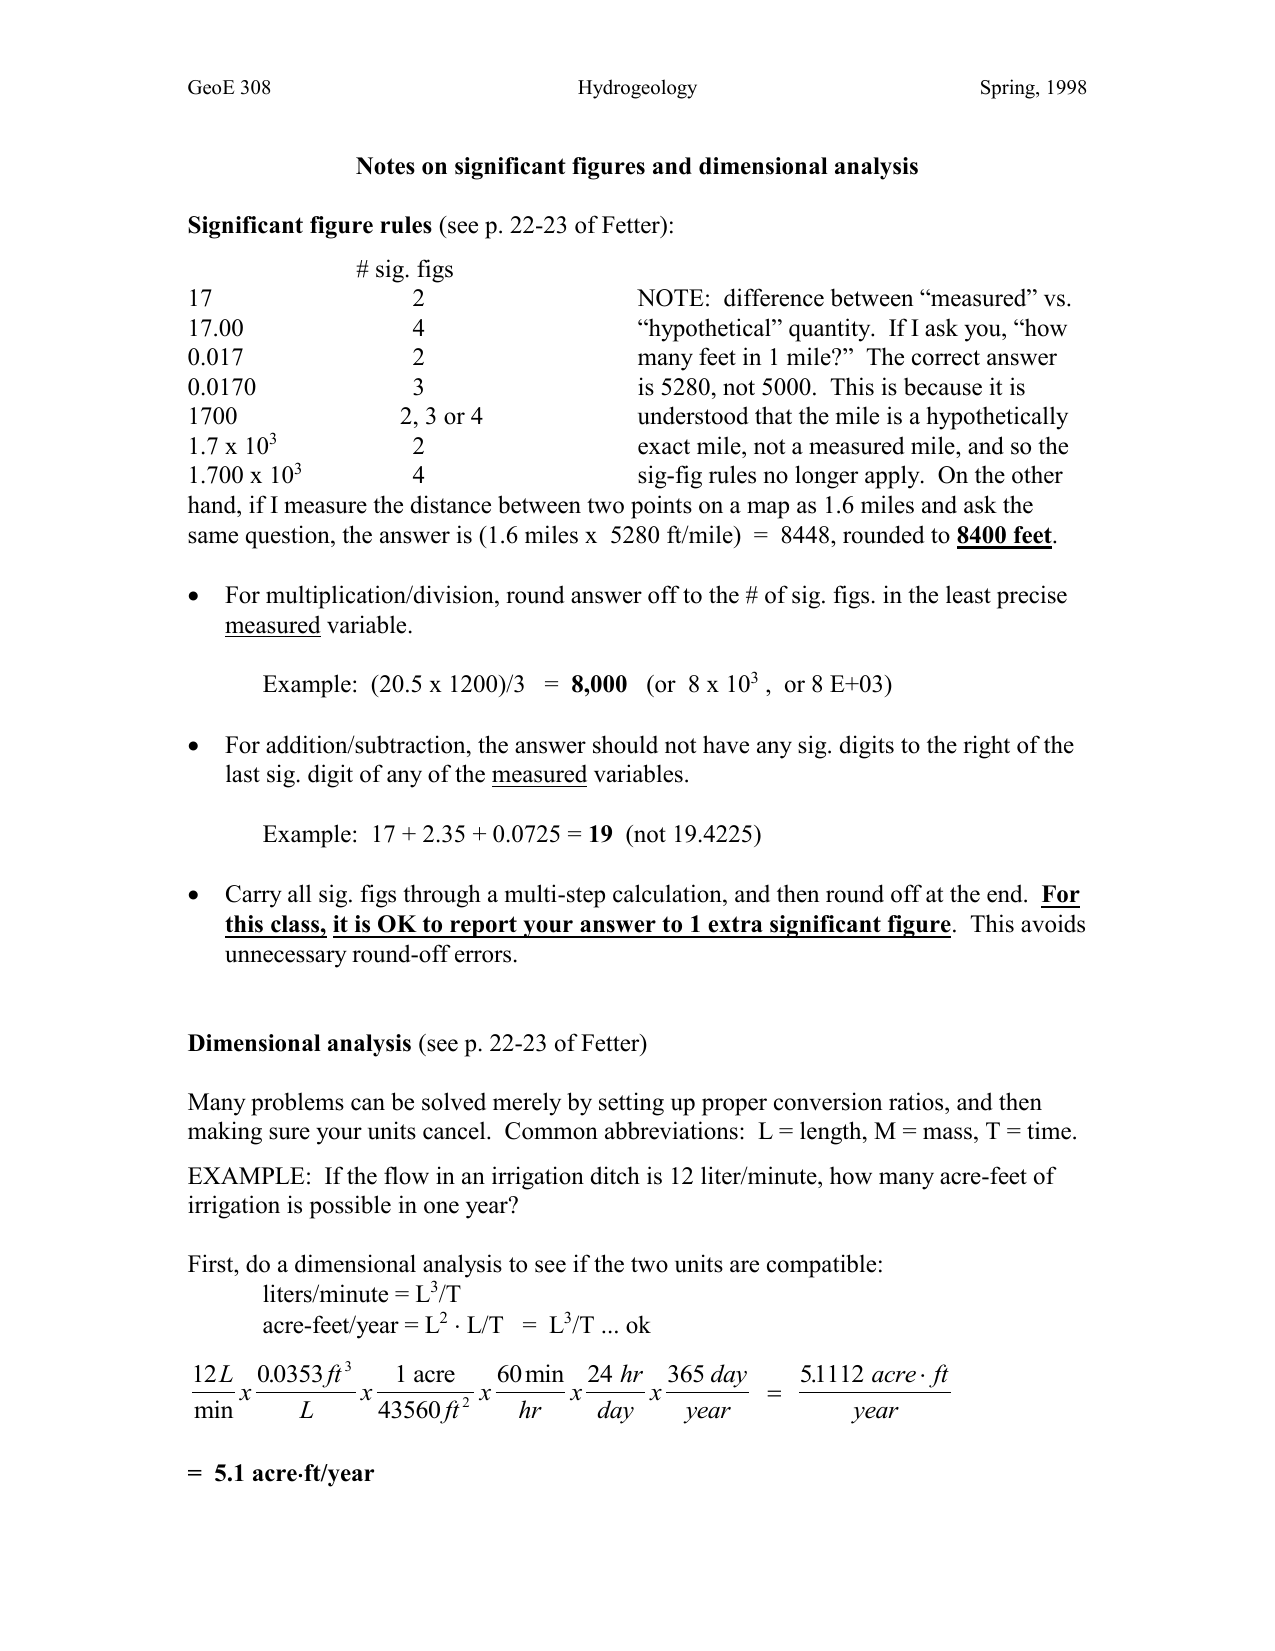 Notes on sig figs and dimensional analysis